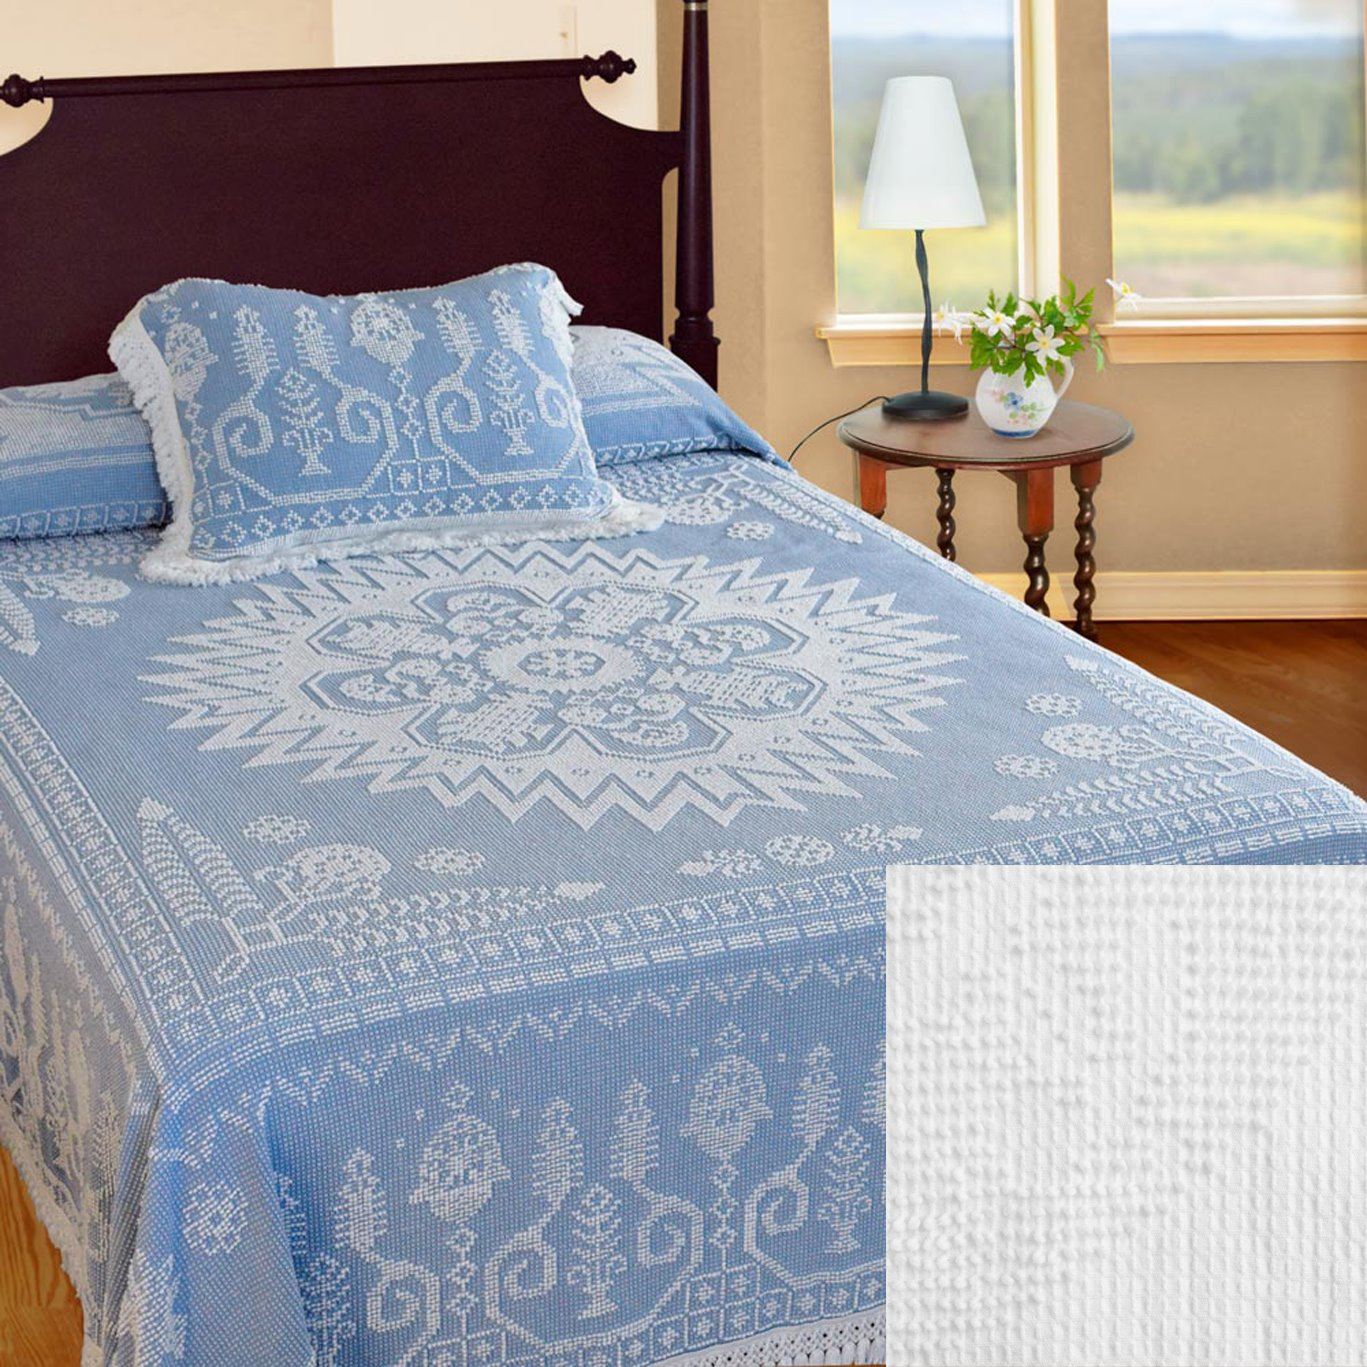 Spirit of America Bedspread Queen White